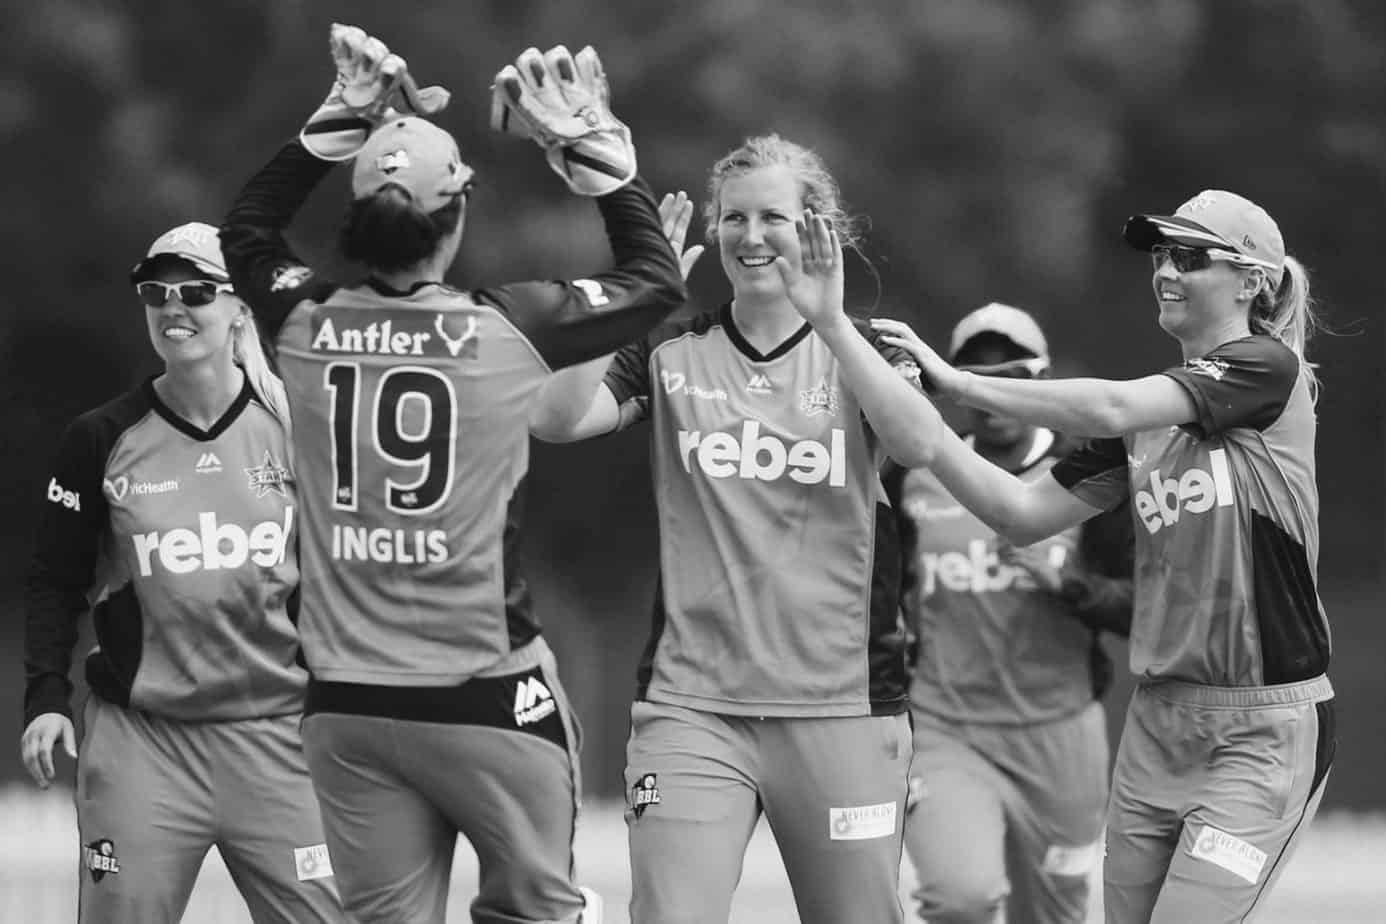 WBBL player profile: Morna Nielsen